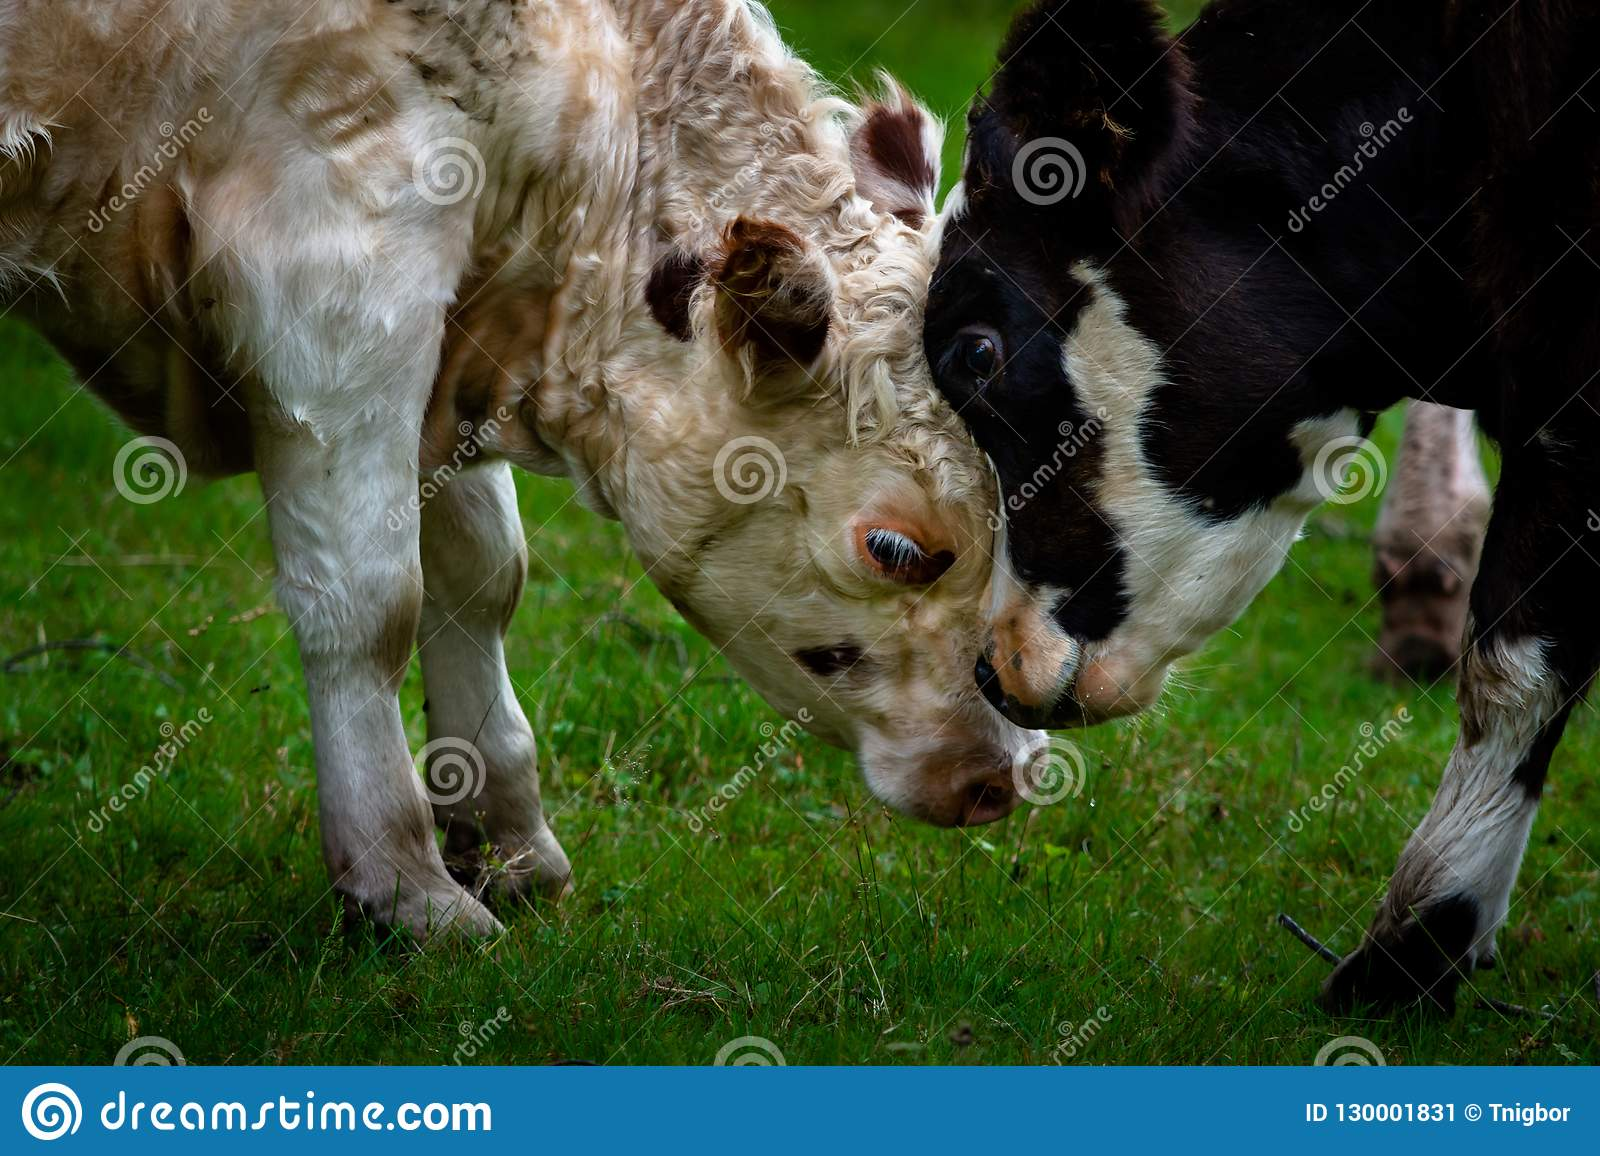 Mother and Calf butting heads togerther on green grass